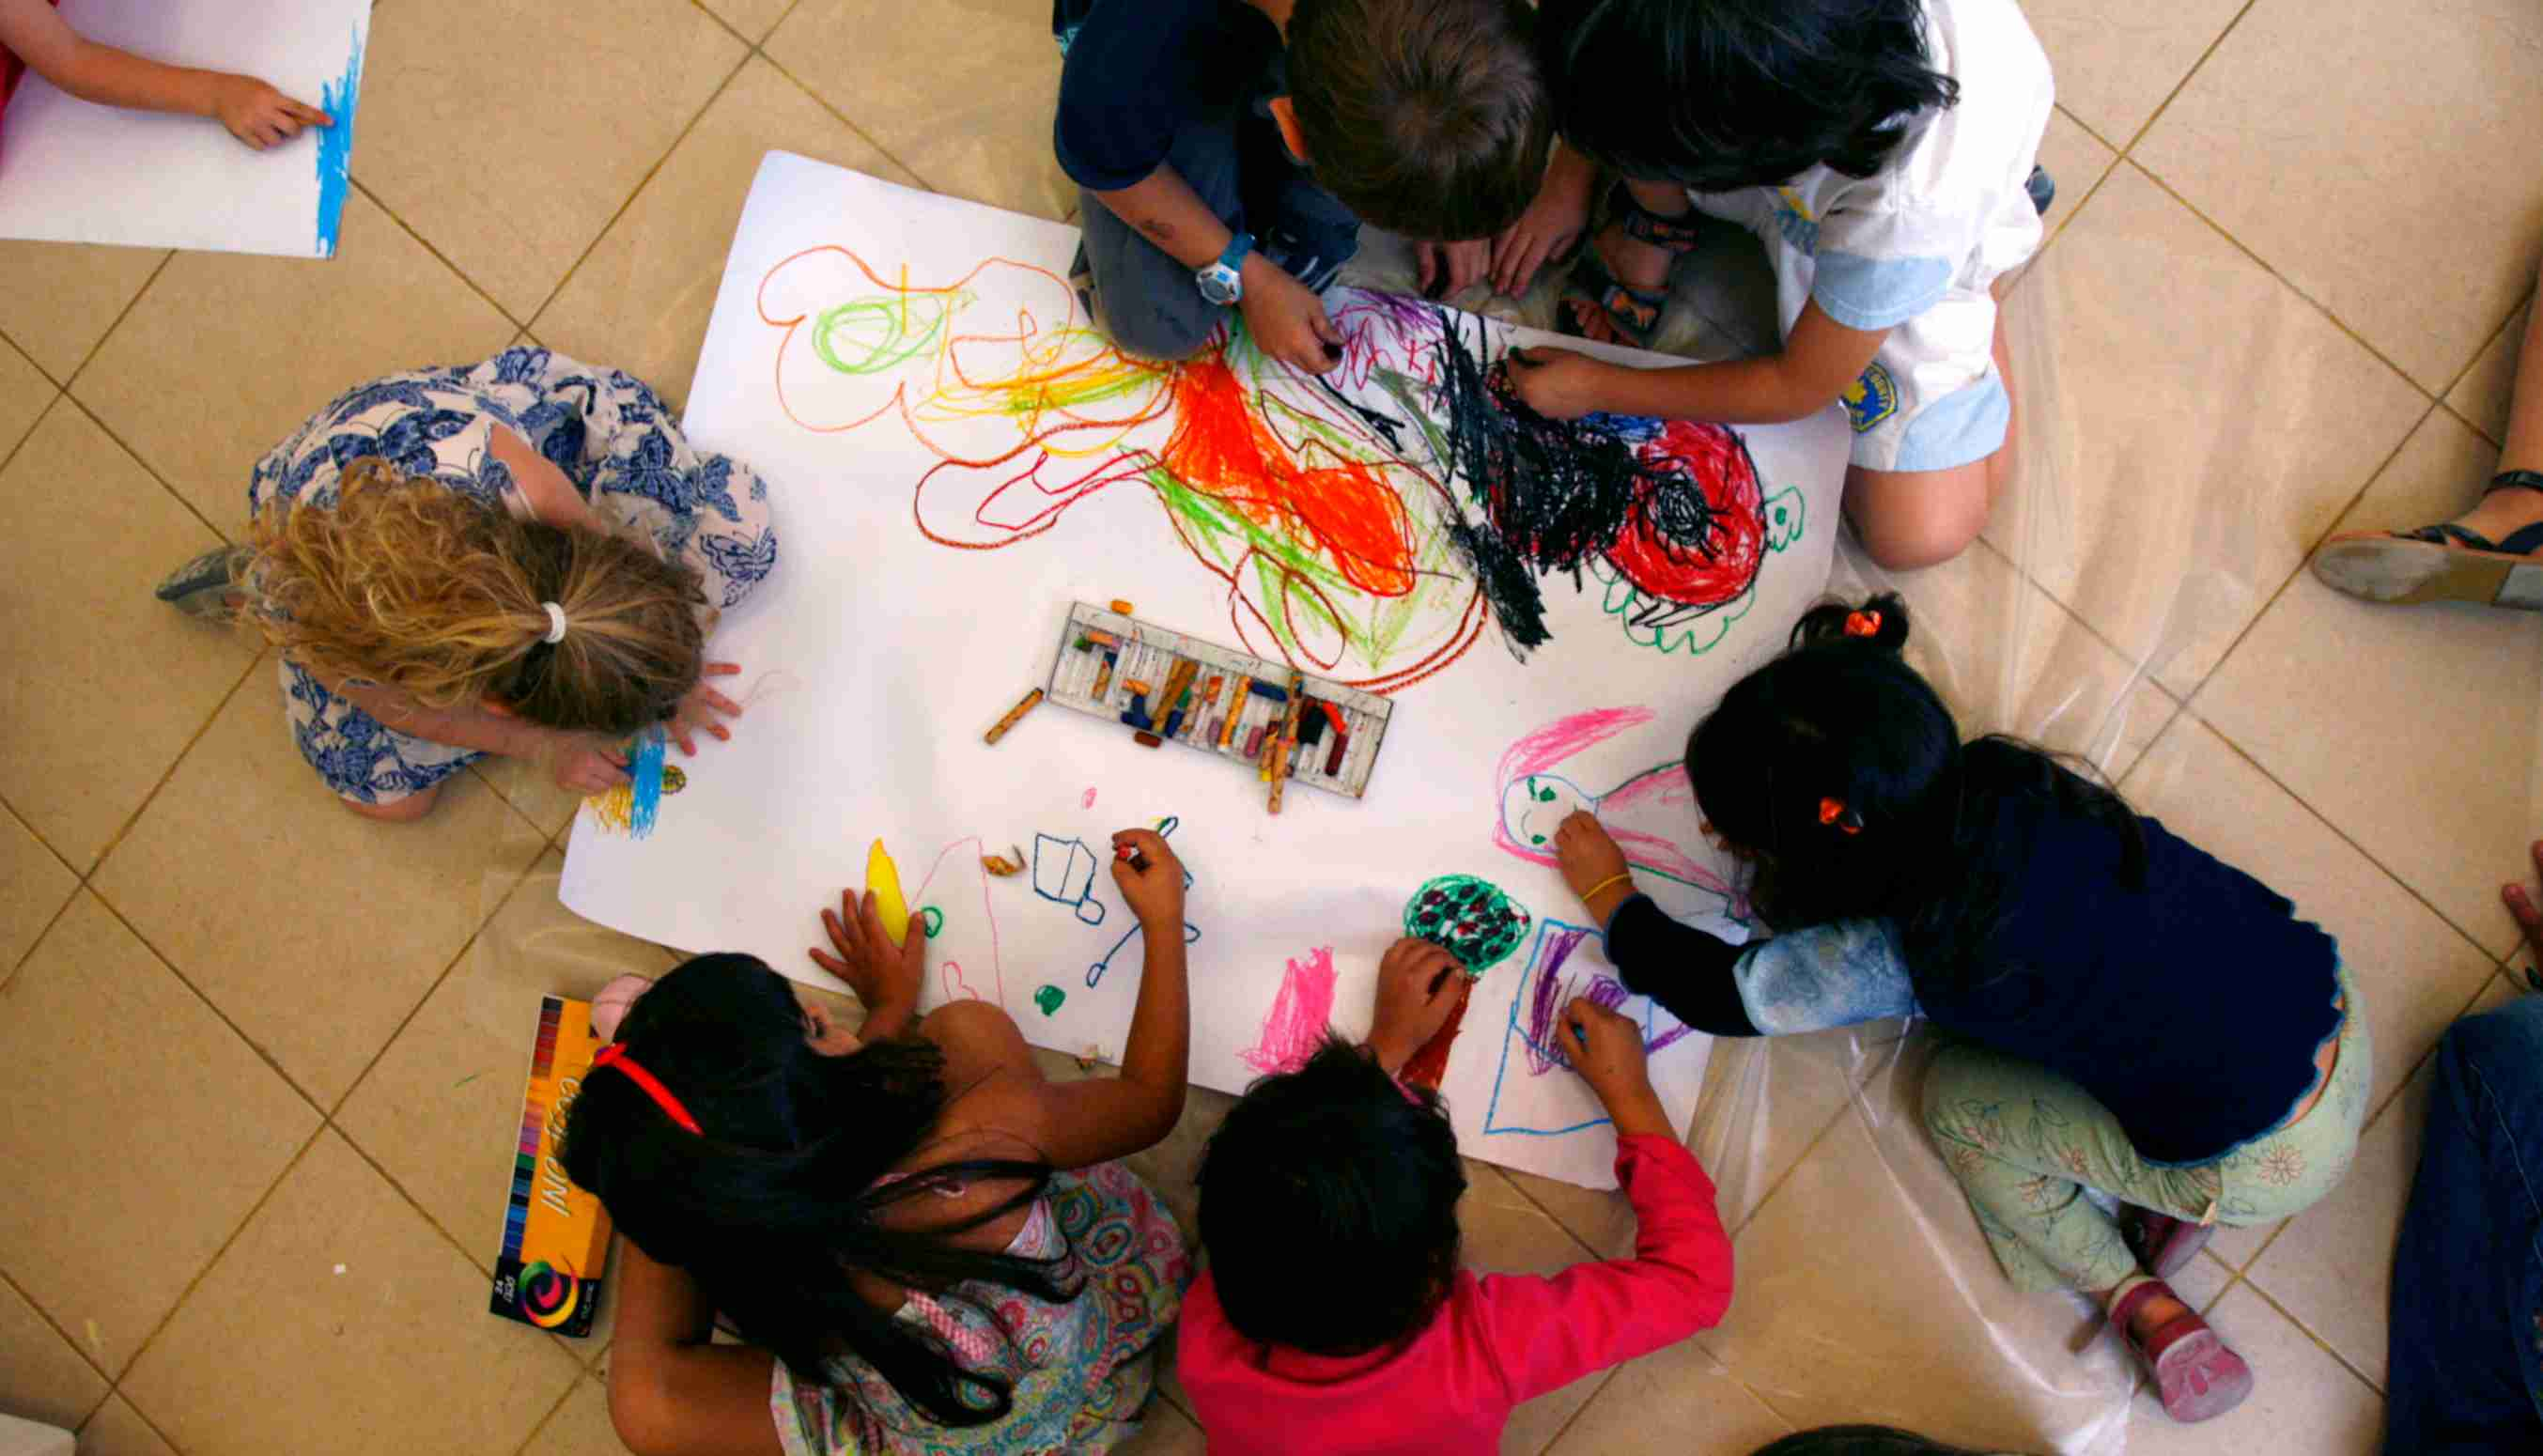 Pre-schoolers draw together